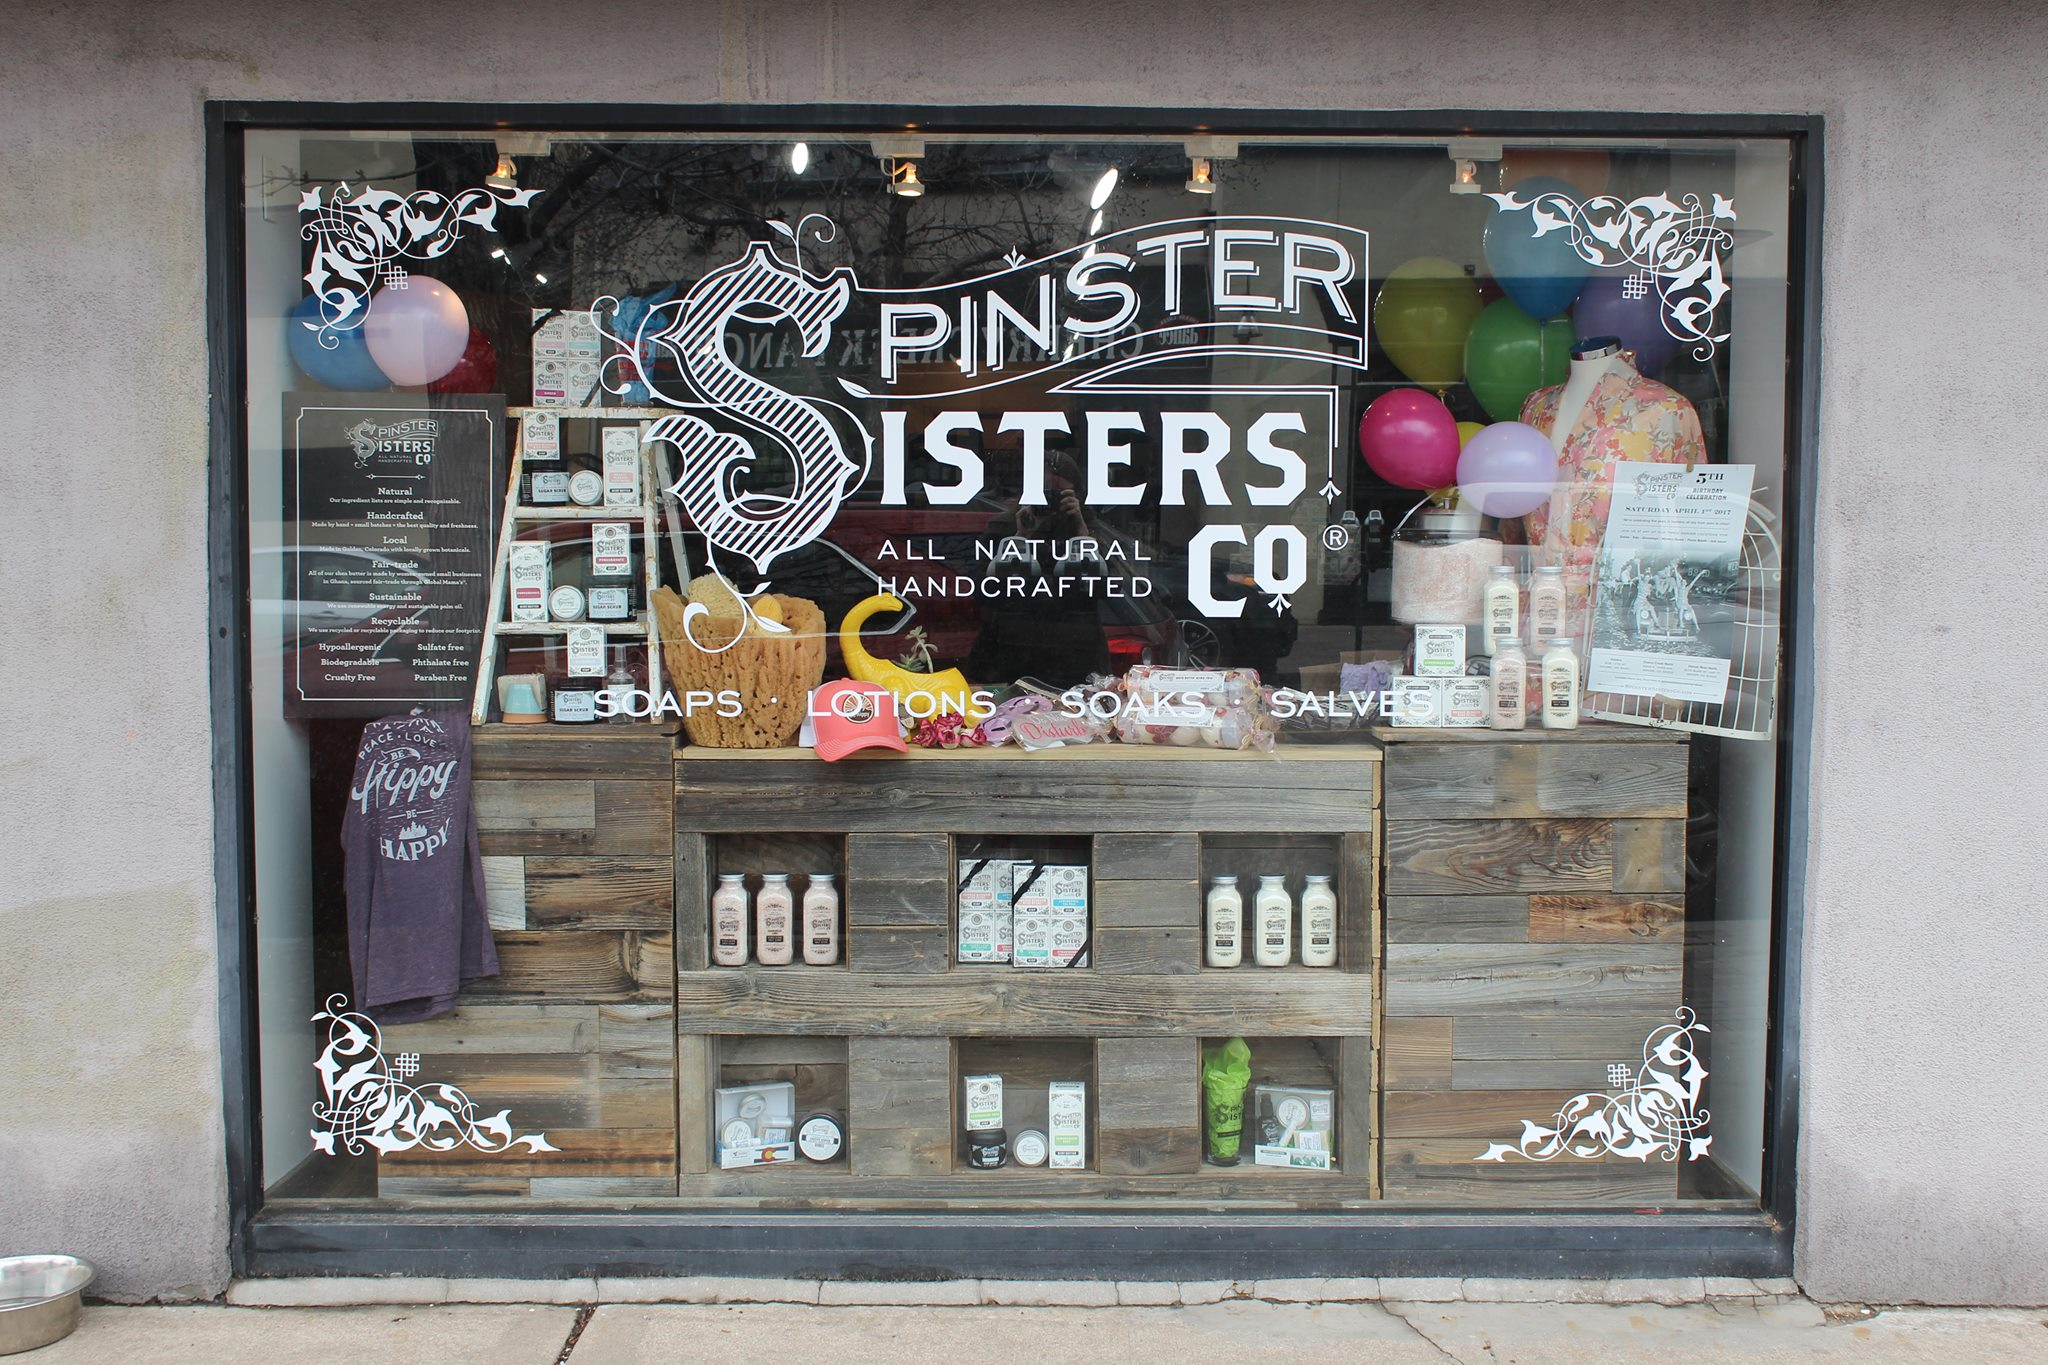 Denver Beauty, Spinster Sisters Co, Denver Organic